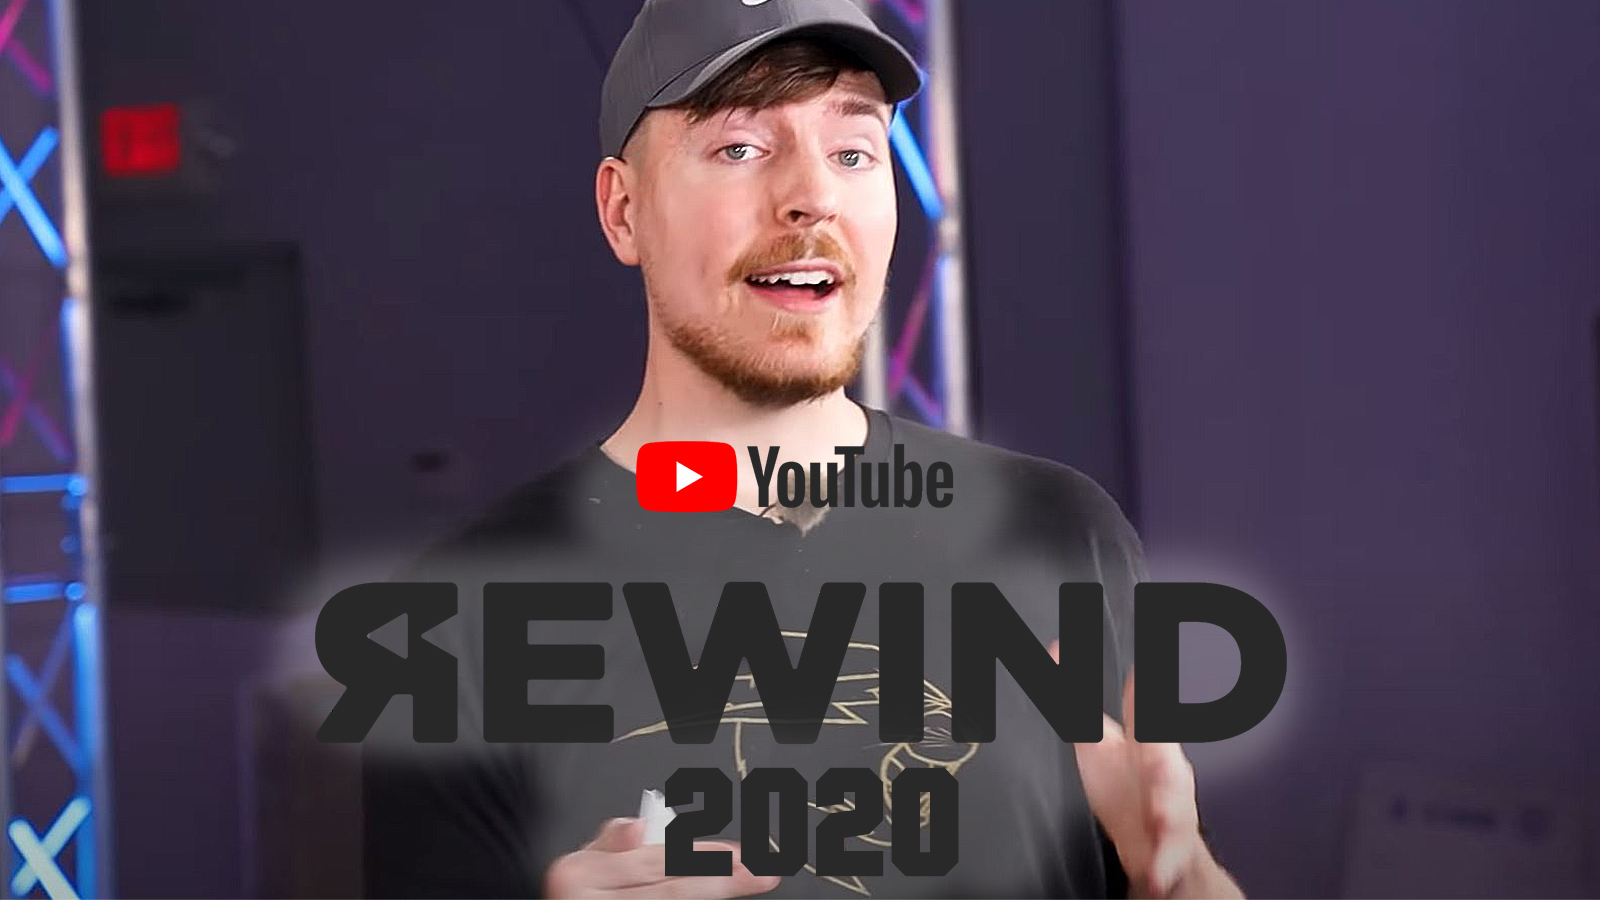 How to watch Mr Beast YouTube Rewind 2020